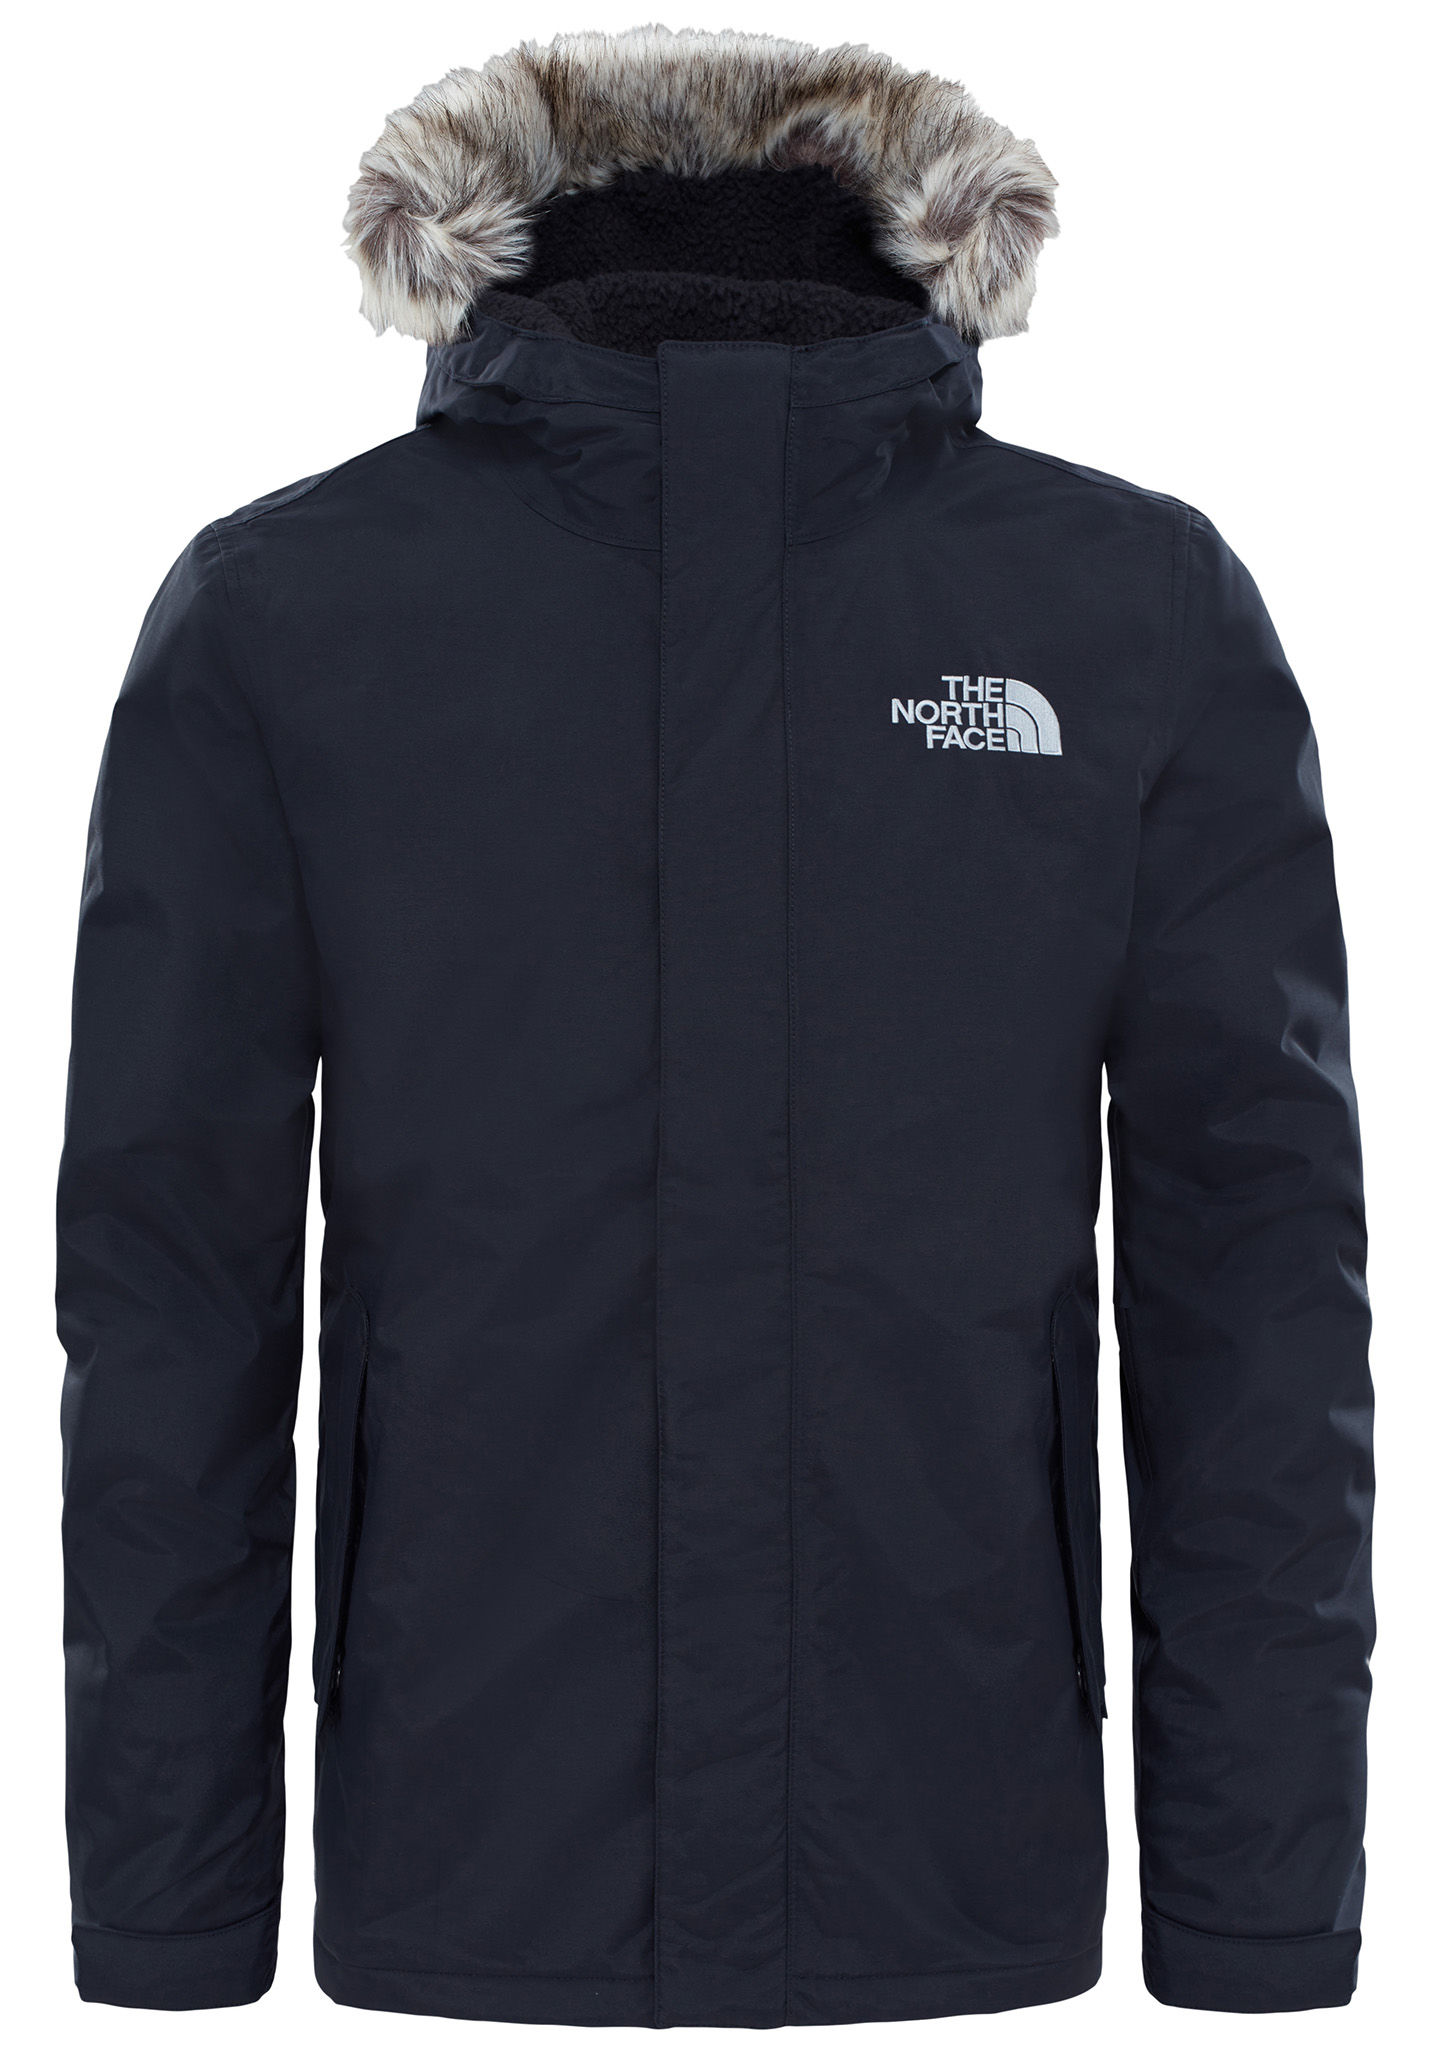 THE NORTH FACE Sherpa Zaneck - Giacca tecnica per Uomo - Nero - Planet  Sports edd636fad9c5